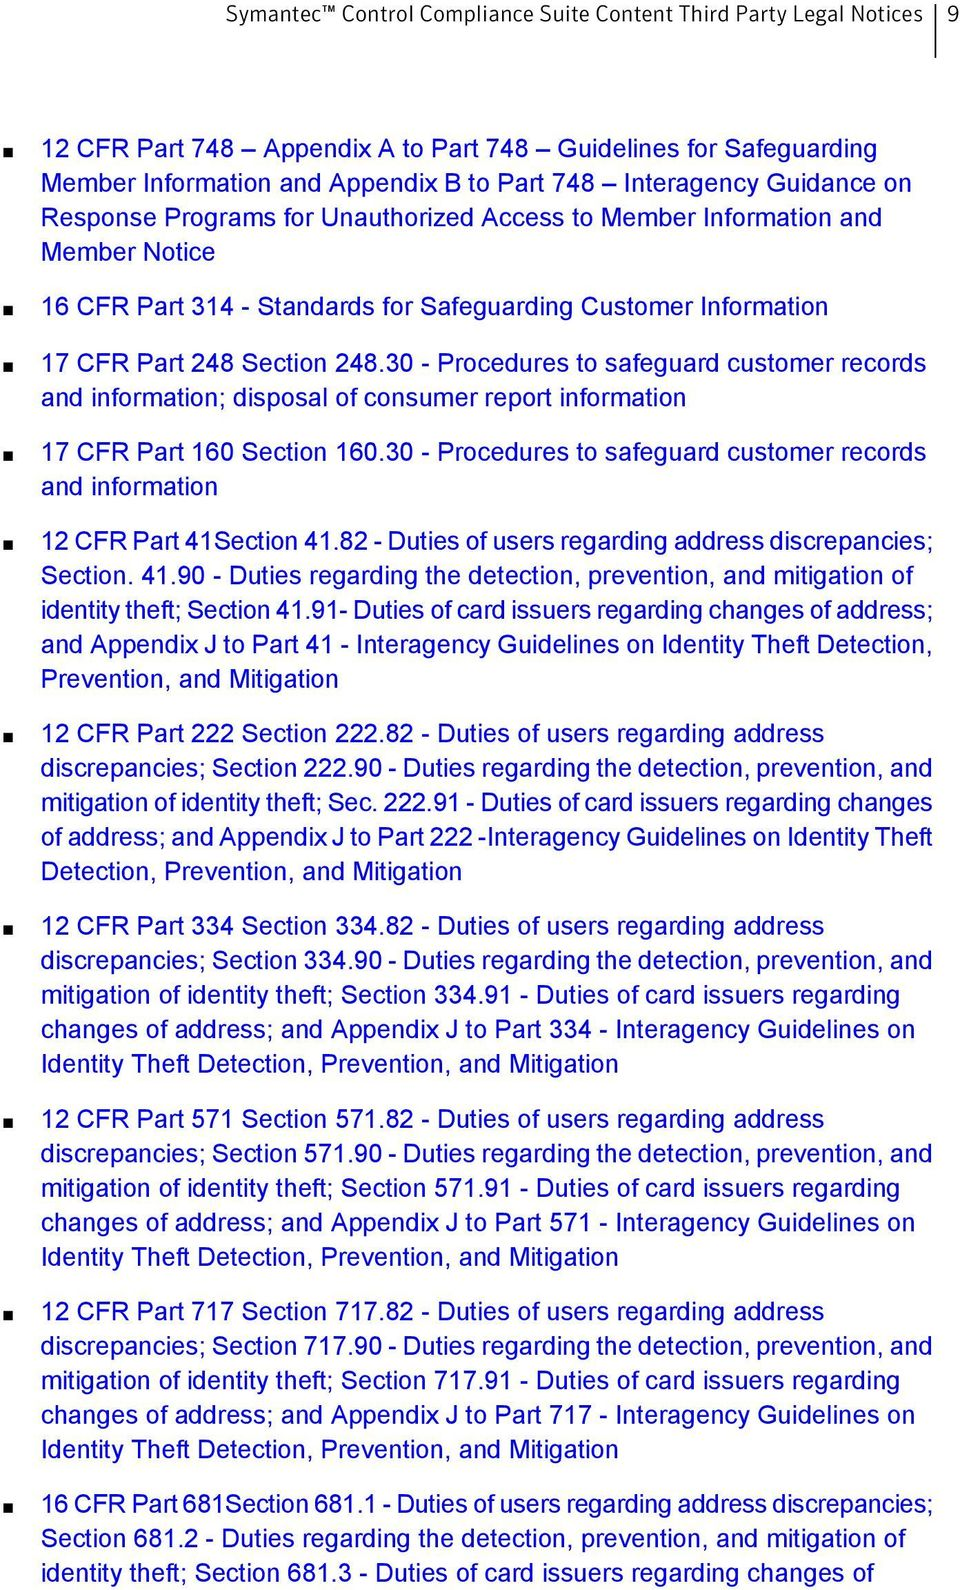 30 - Procedures to safeguard customer records and information; disposal of consumer report information 17 CFR Part 160 Section 160.